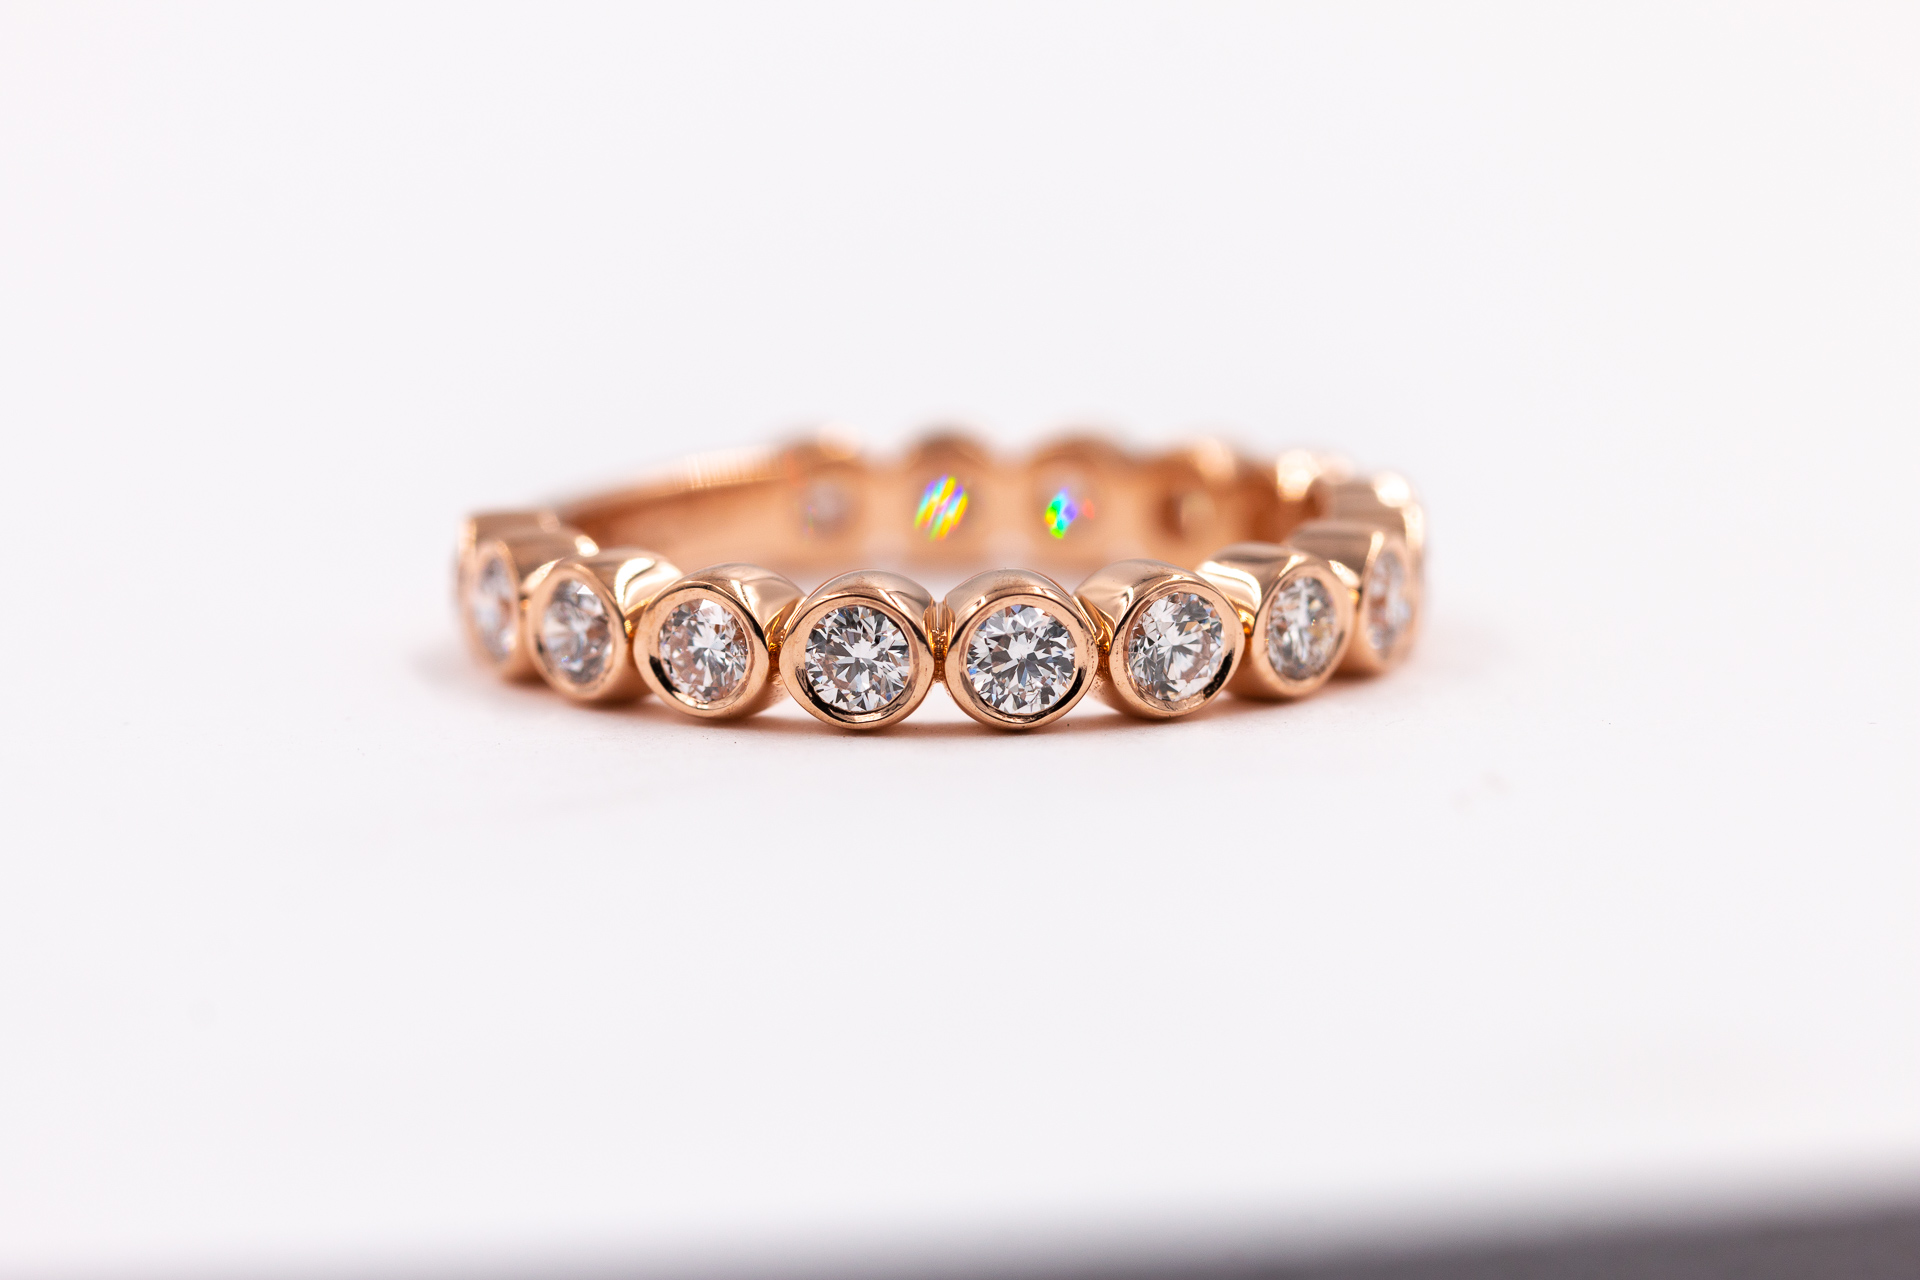 rose-gold-wedding-band-